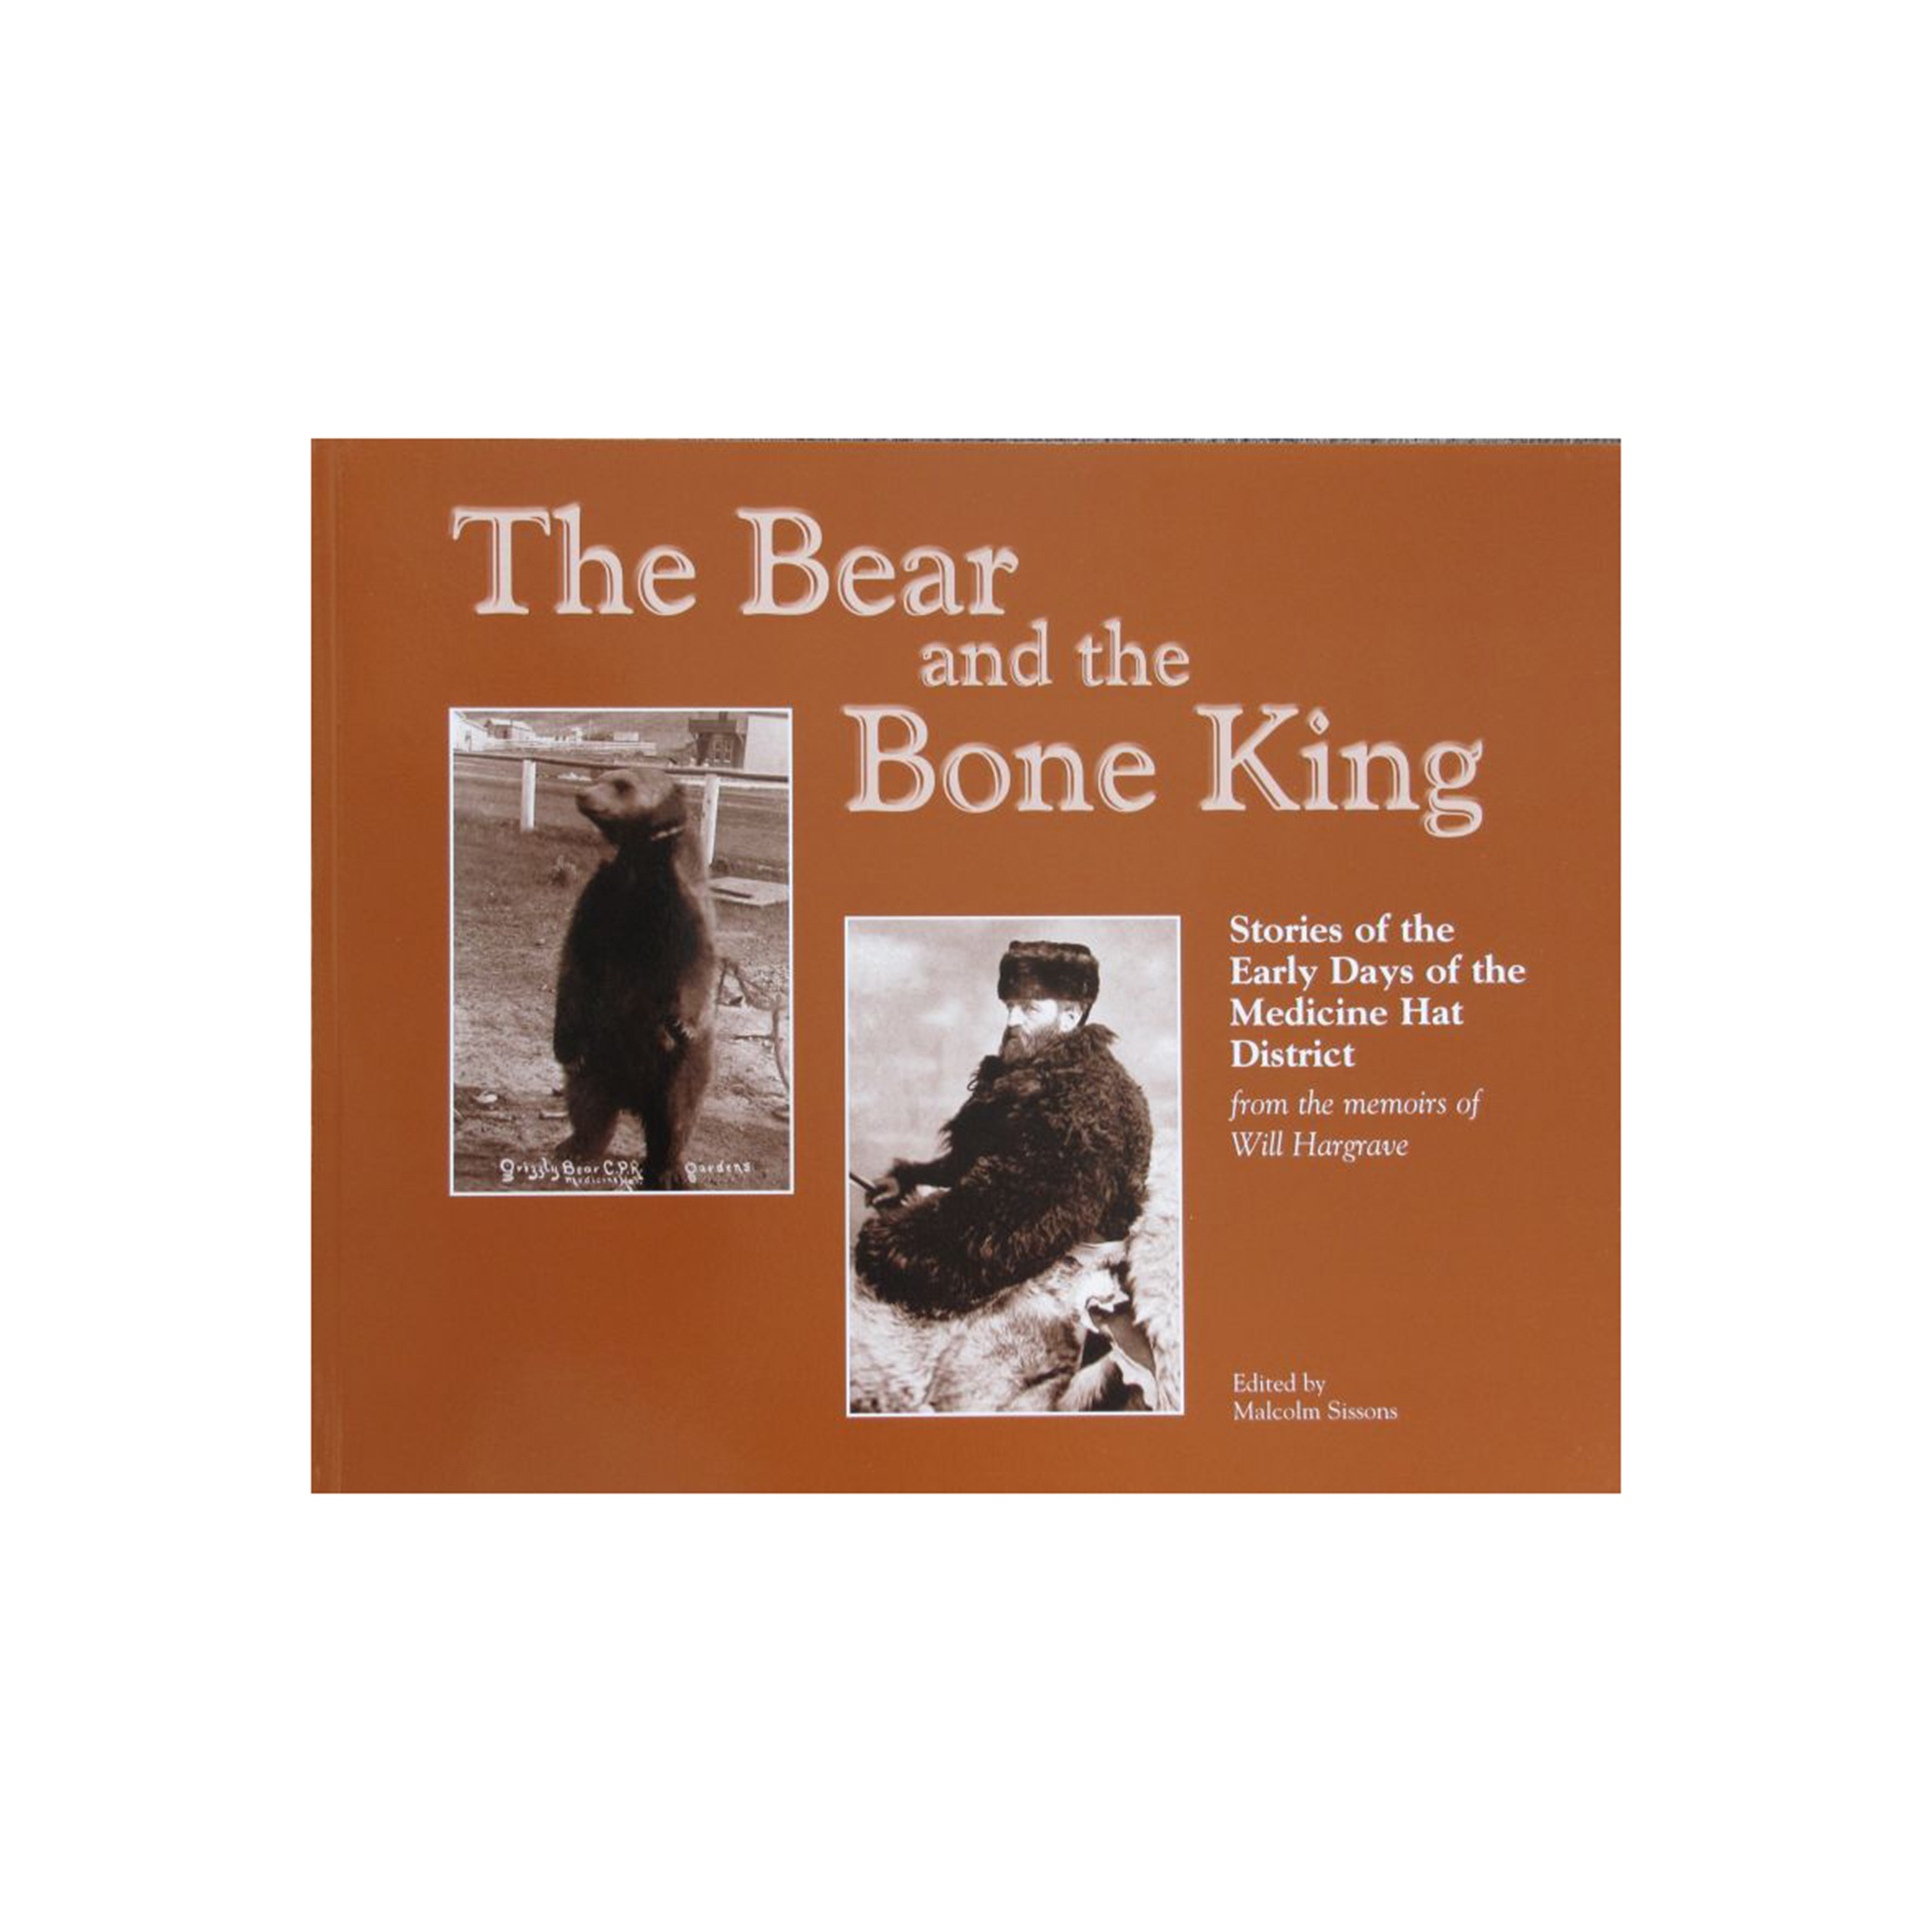 The Bear and the Bone King